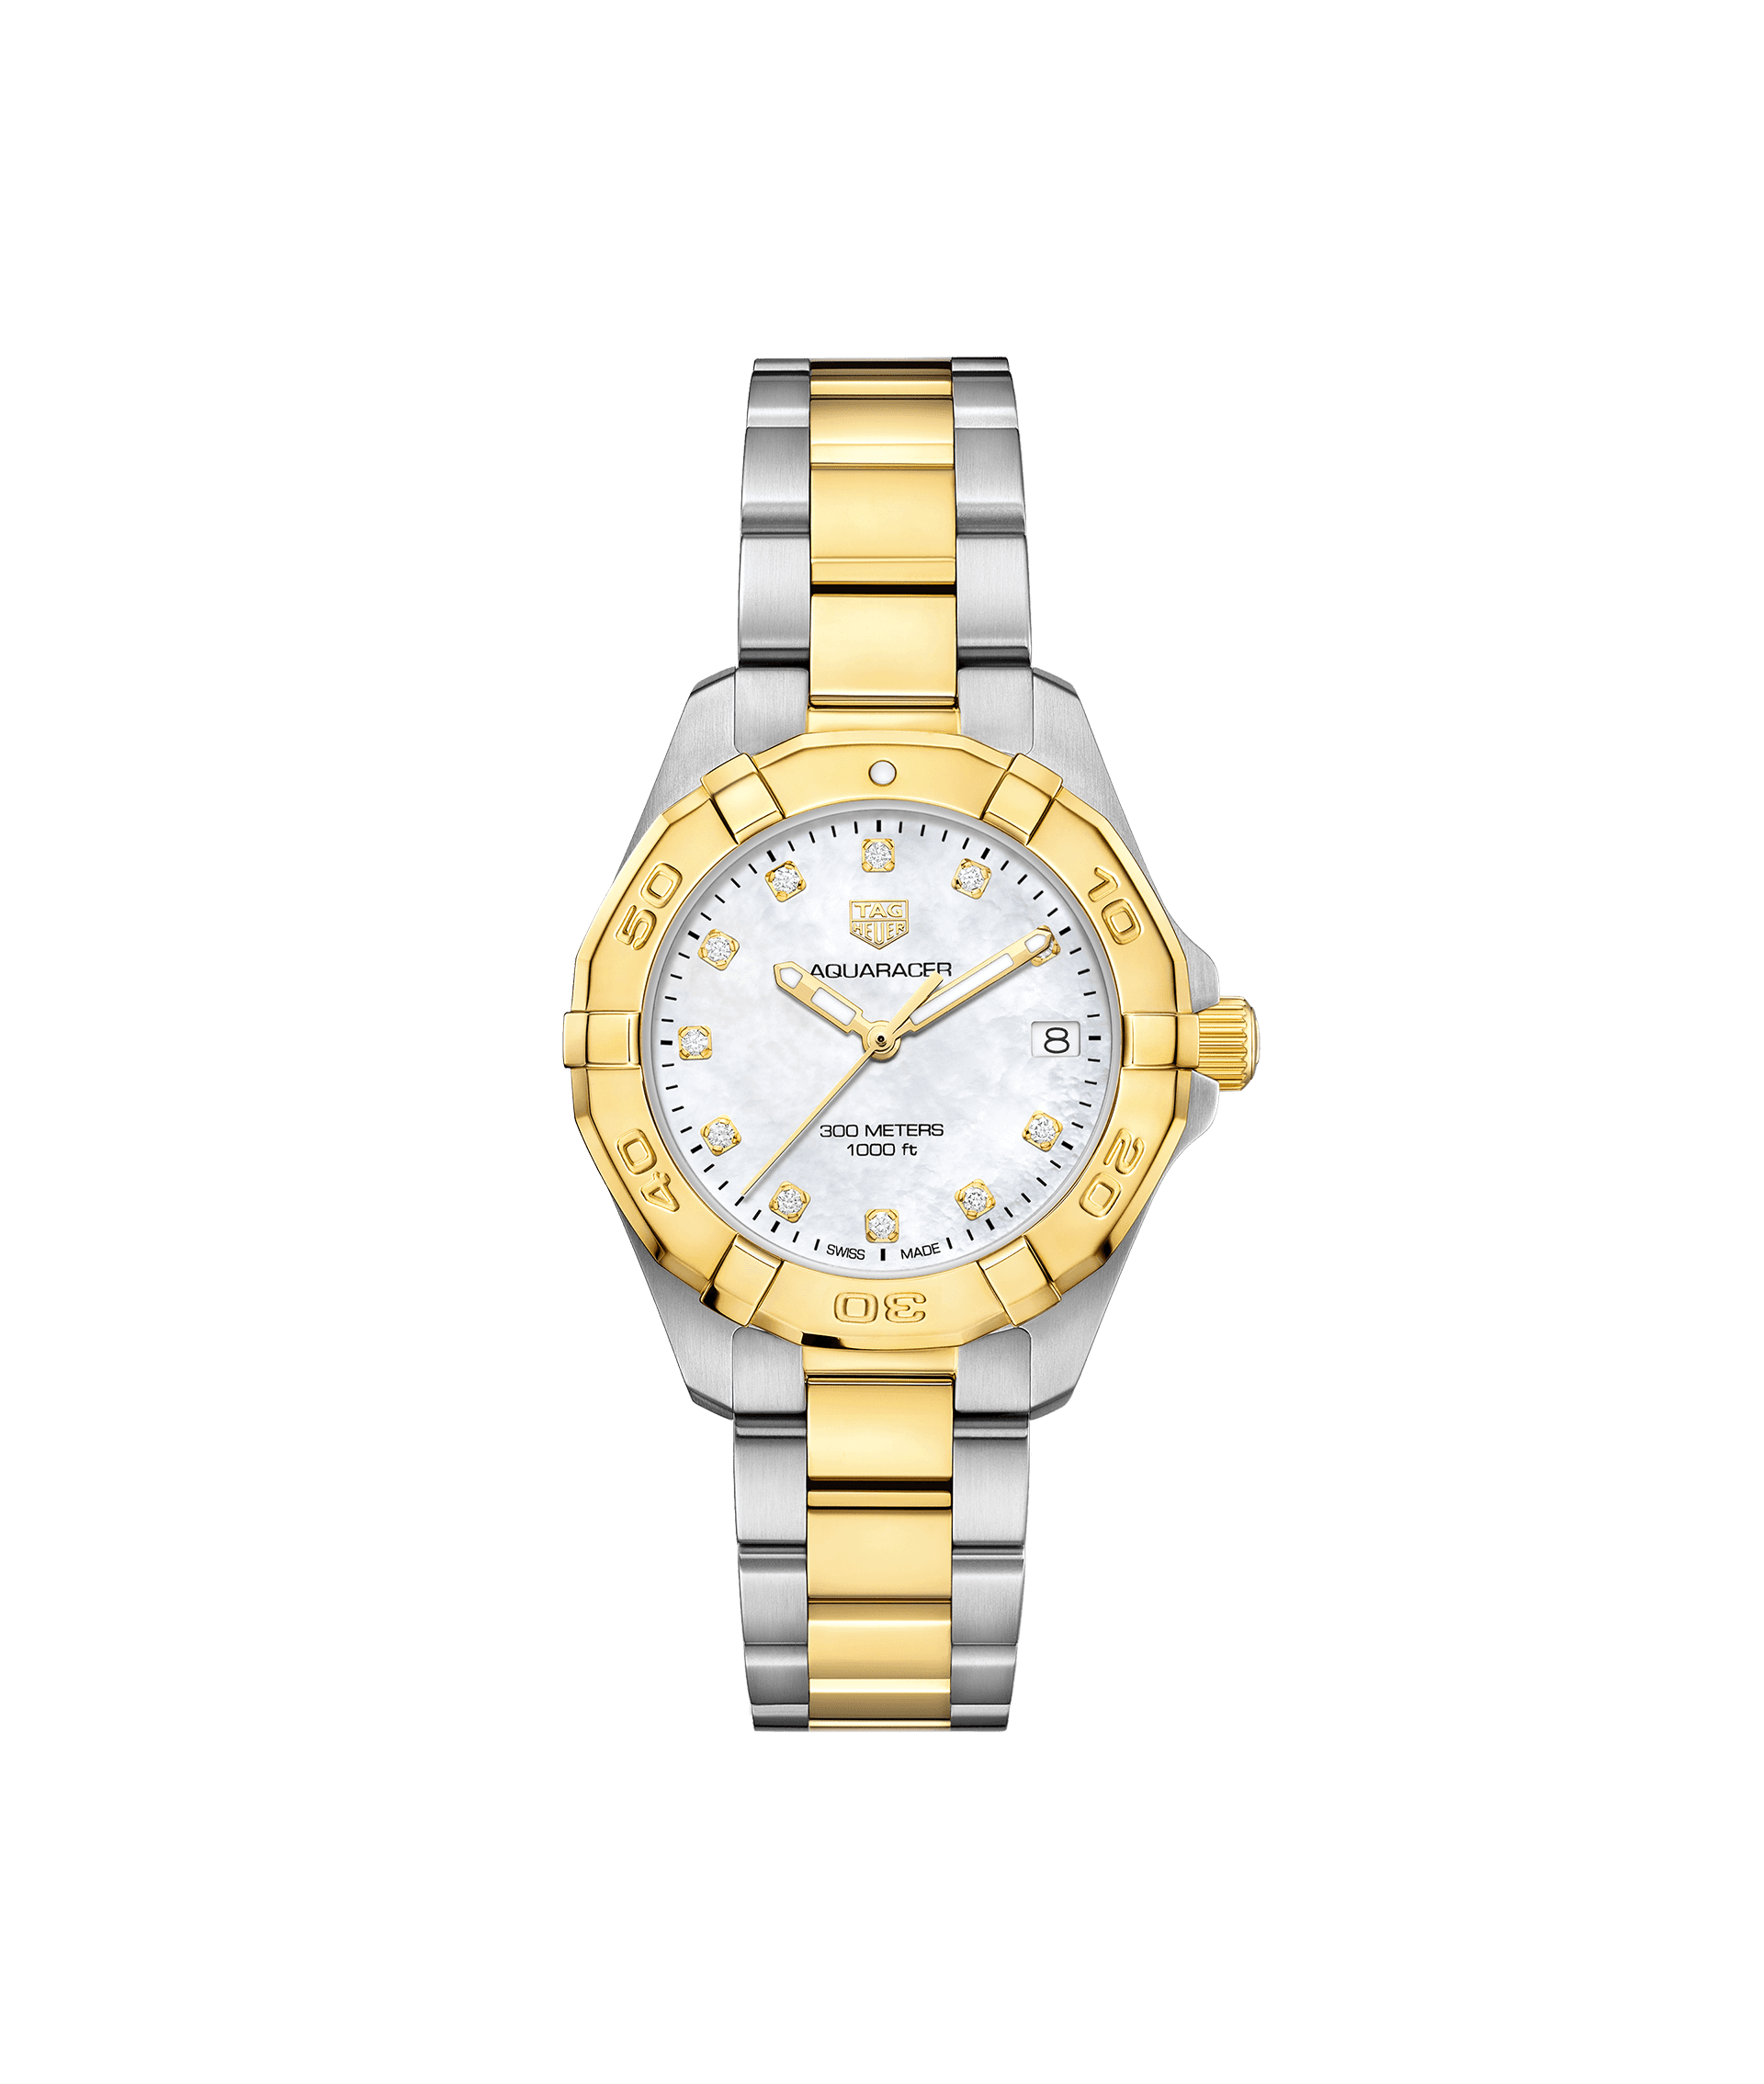 TAG HEUER AQUARACER 300 m - 32mm 18K GOLD BEZEL - WBD1322.BB0320